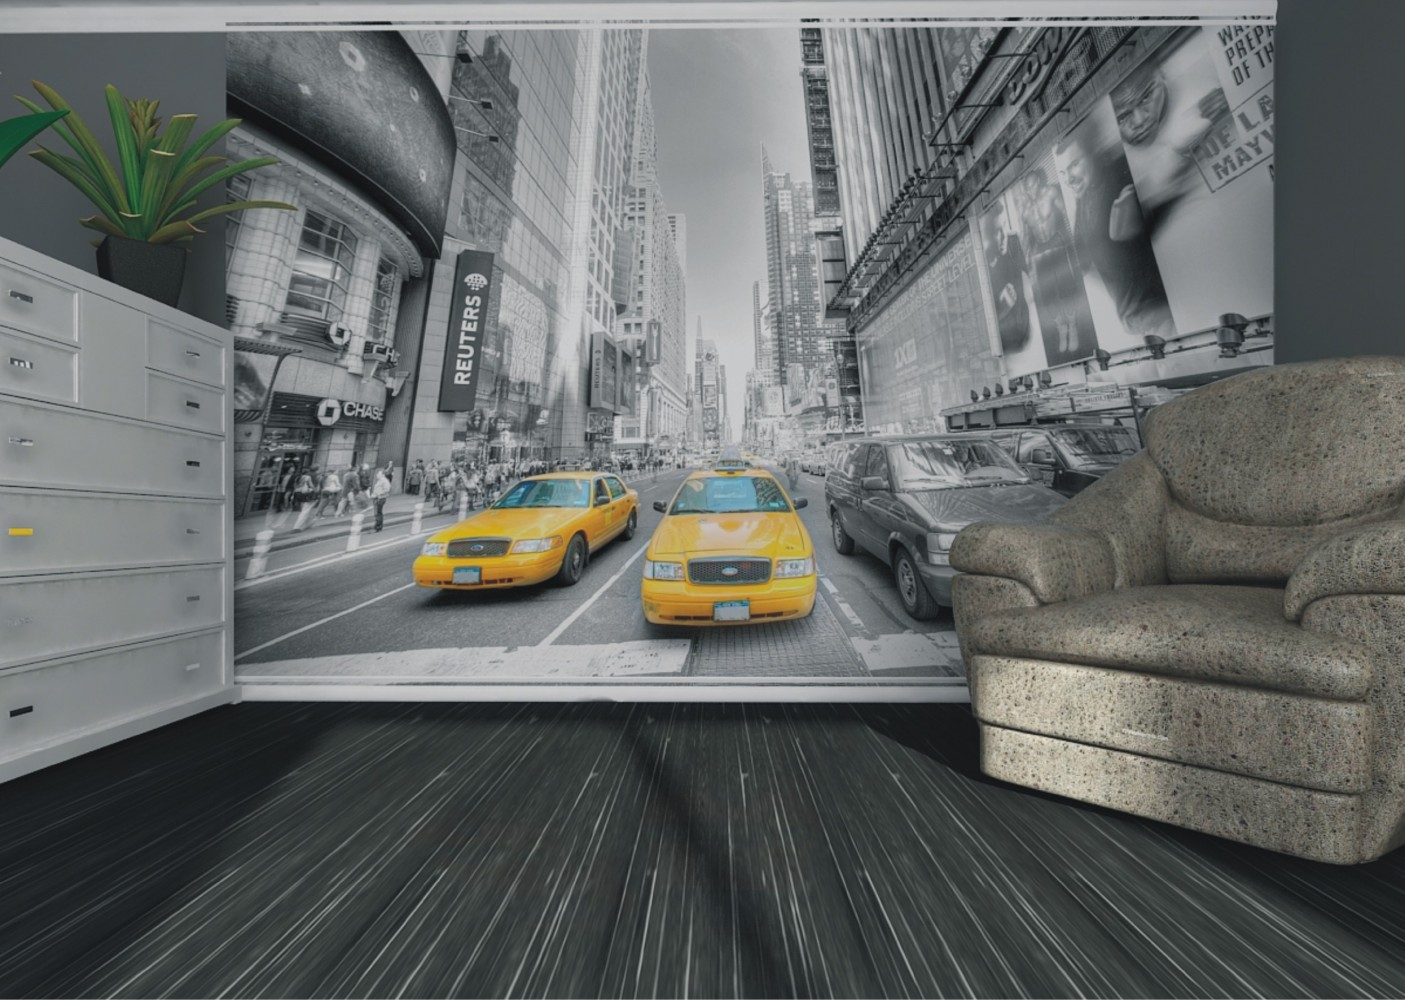 fototapete vlies tapete new york taxi yellow cap manhattan nyc foto 330 x 270 cm. Black Bedroom Furniture Sets. Home Design Ideas